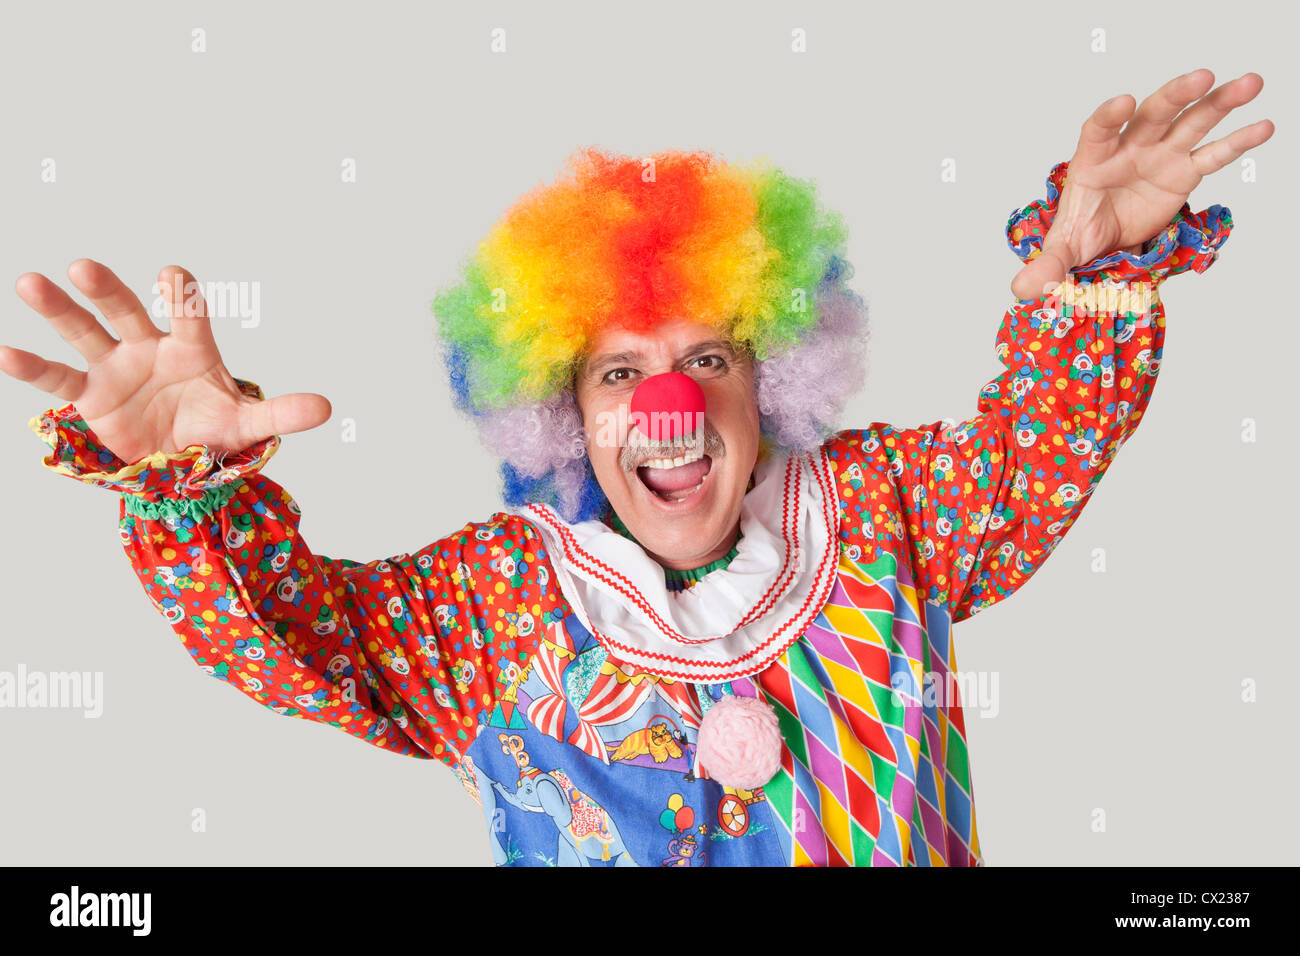 Portrait of funny clown with arms raised and mouth open against colored background - Stock Image